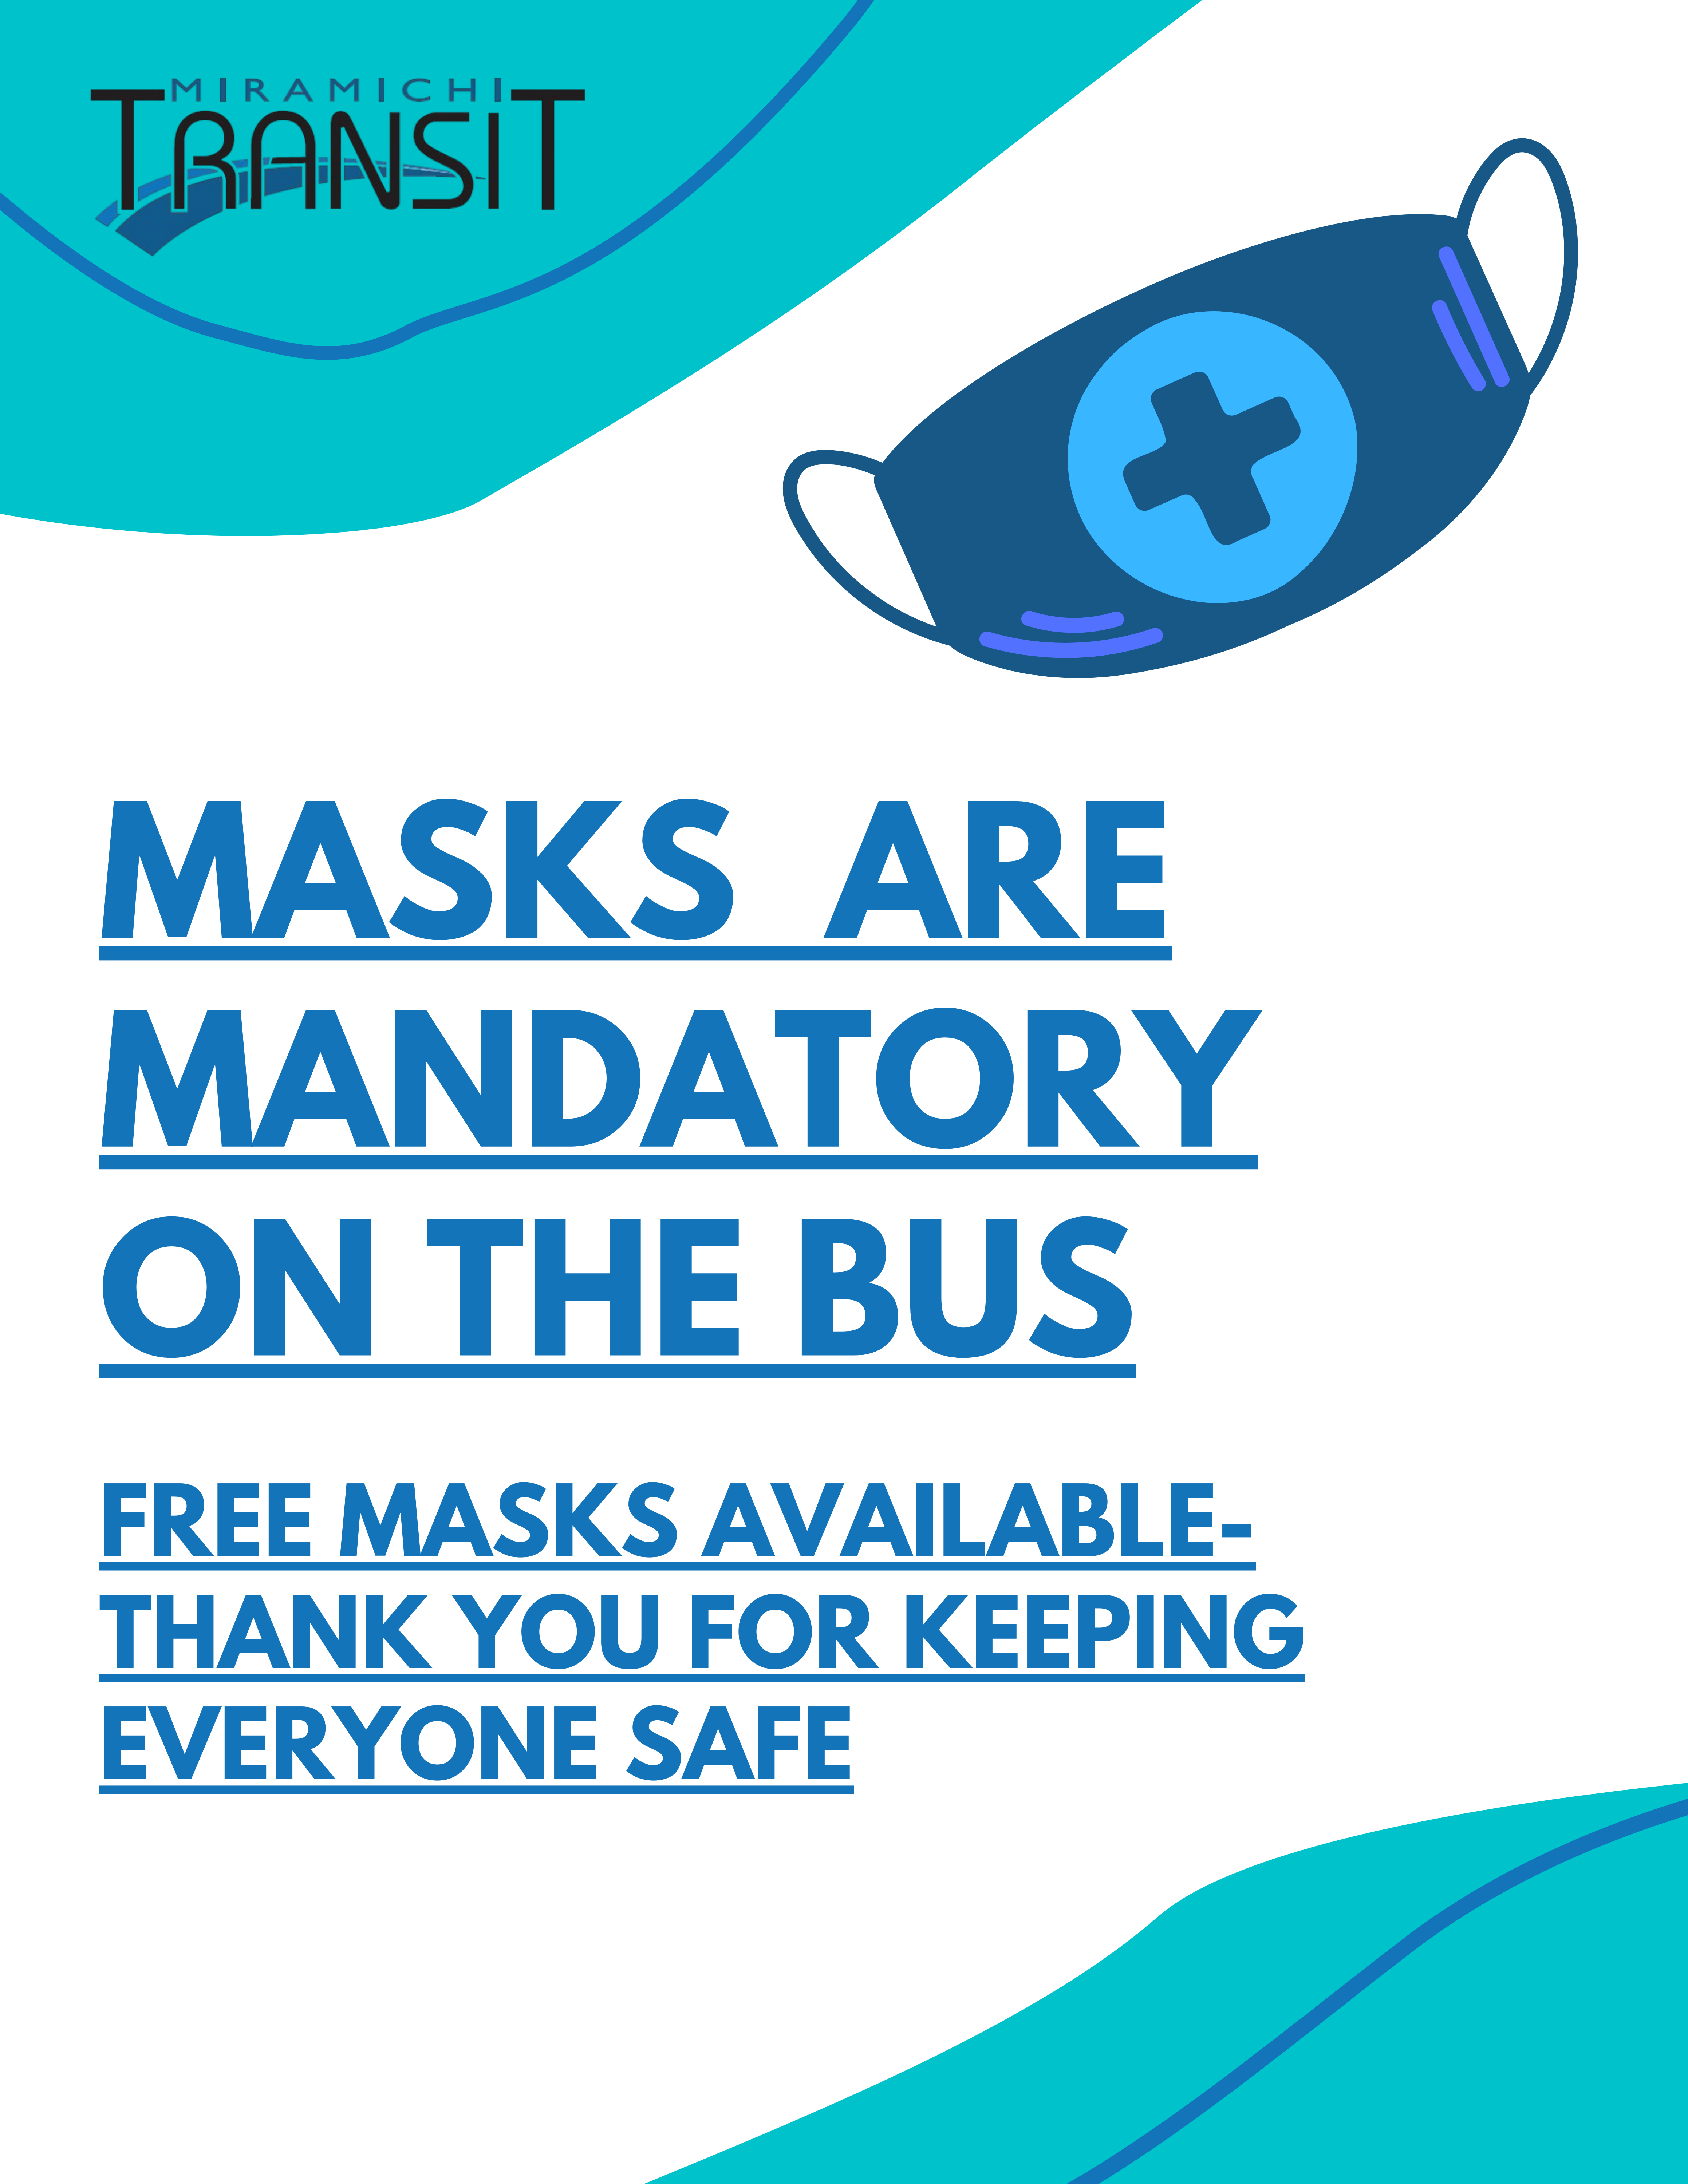 Green and White Proper Mask Use COVID Flyer